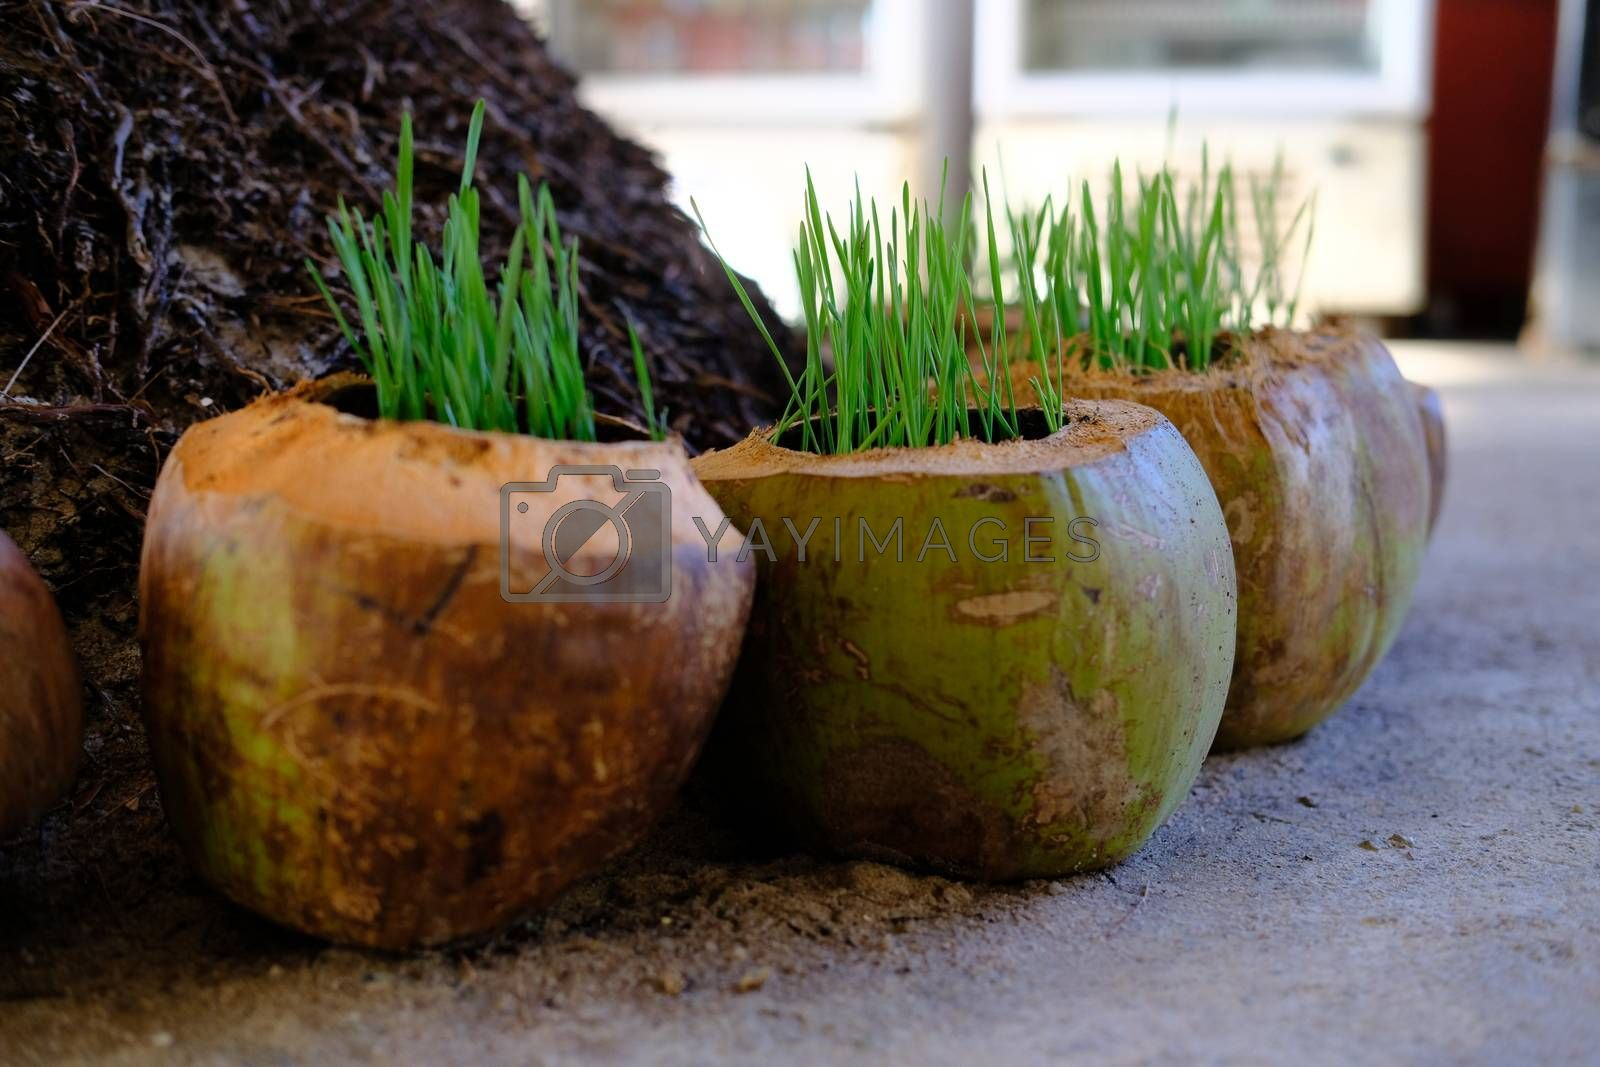 Closeup of Coconut Shell Planter Pot Container on the ground. Growing Fresh green grass in a coconut shells. Garden decoration.